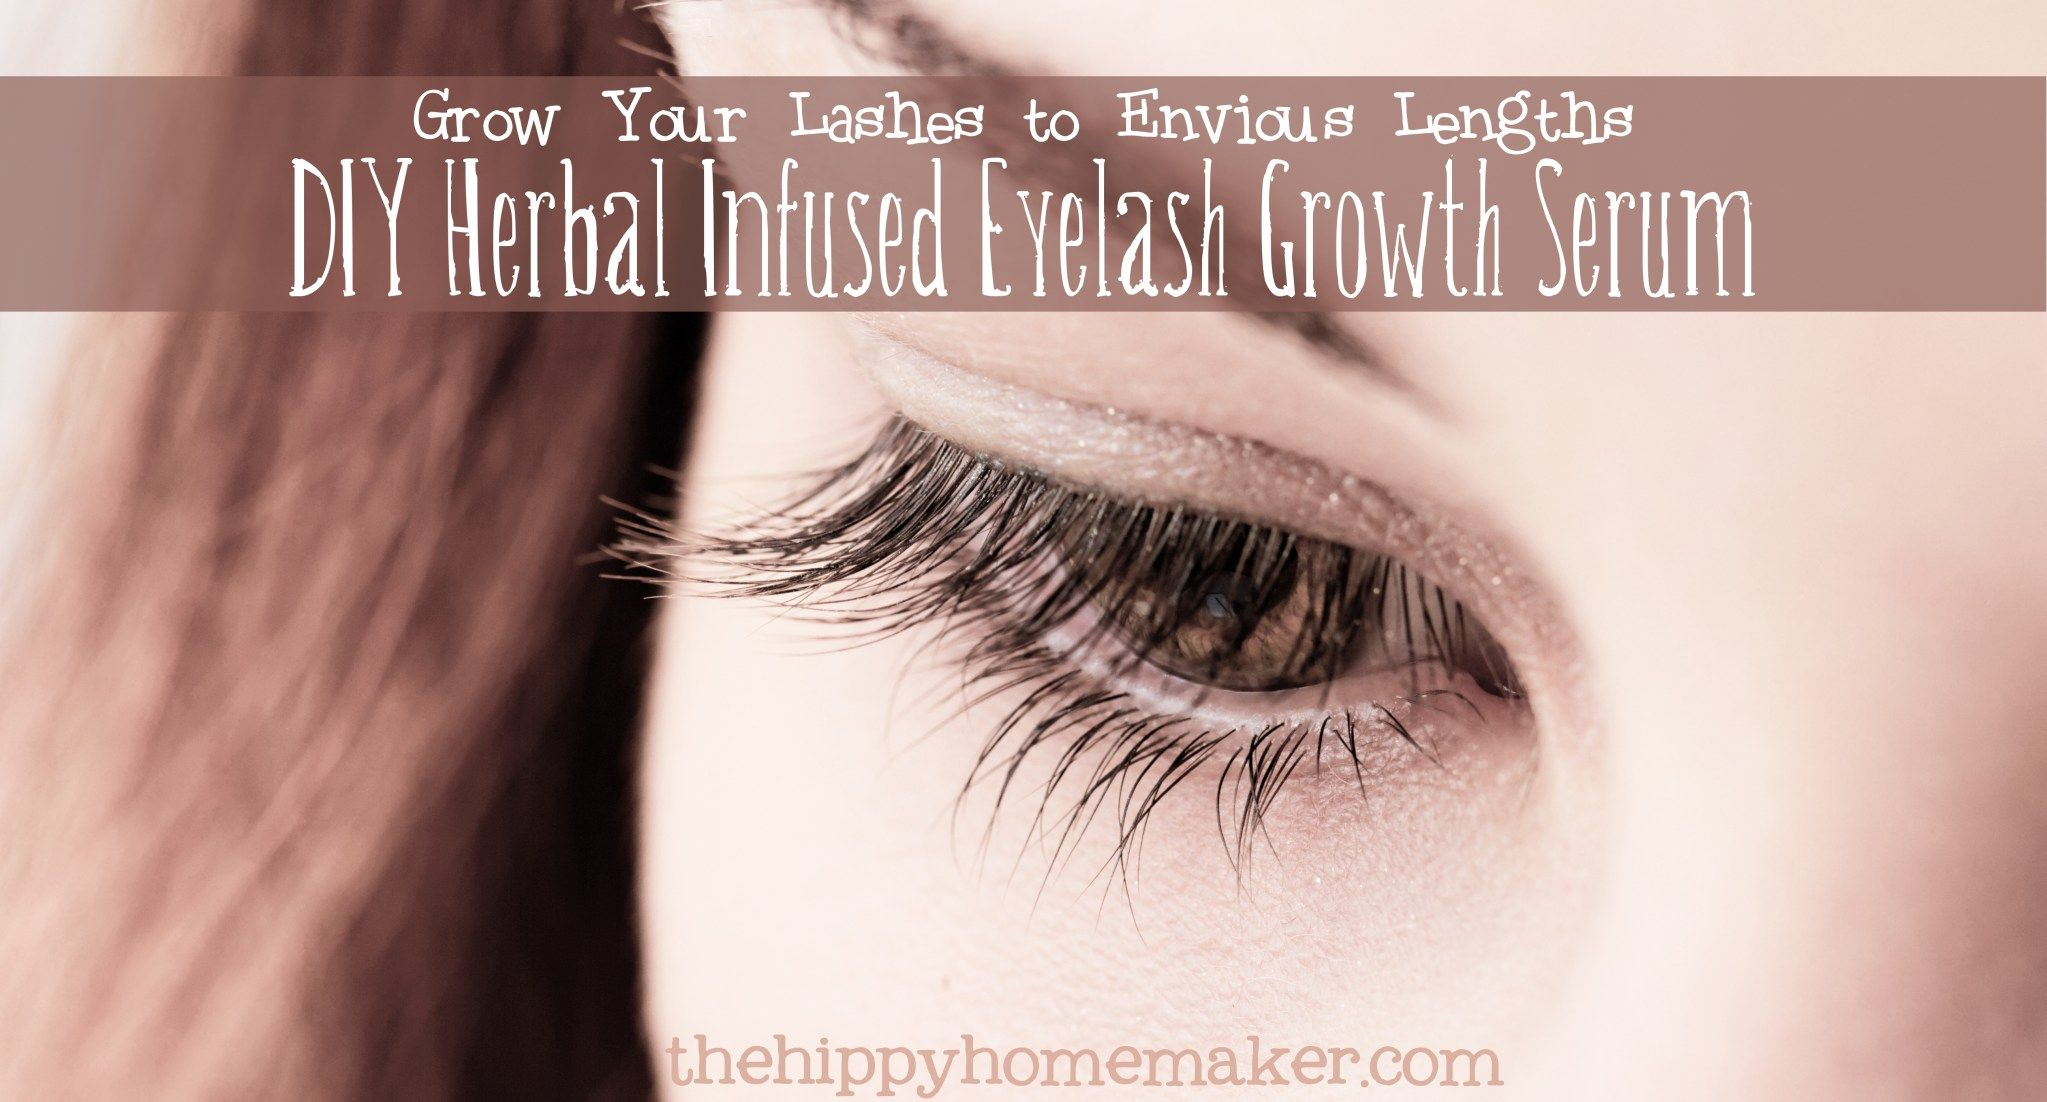 Grow Your Lashes to Envious Lengths  DIY Herbal Infused Eyelash Growth Serum - thehippyhomemaker.com